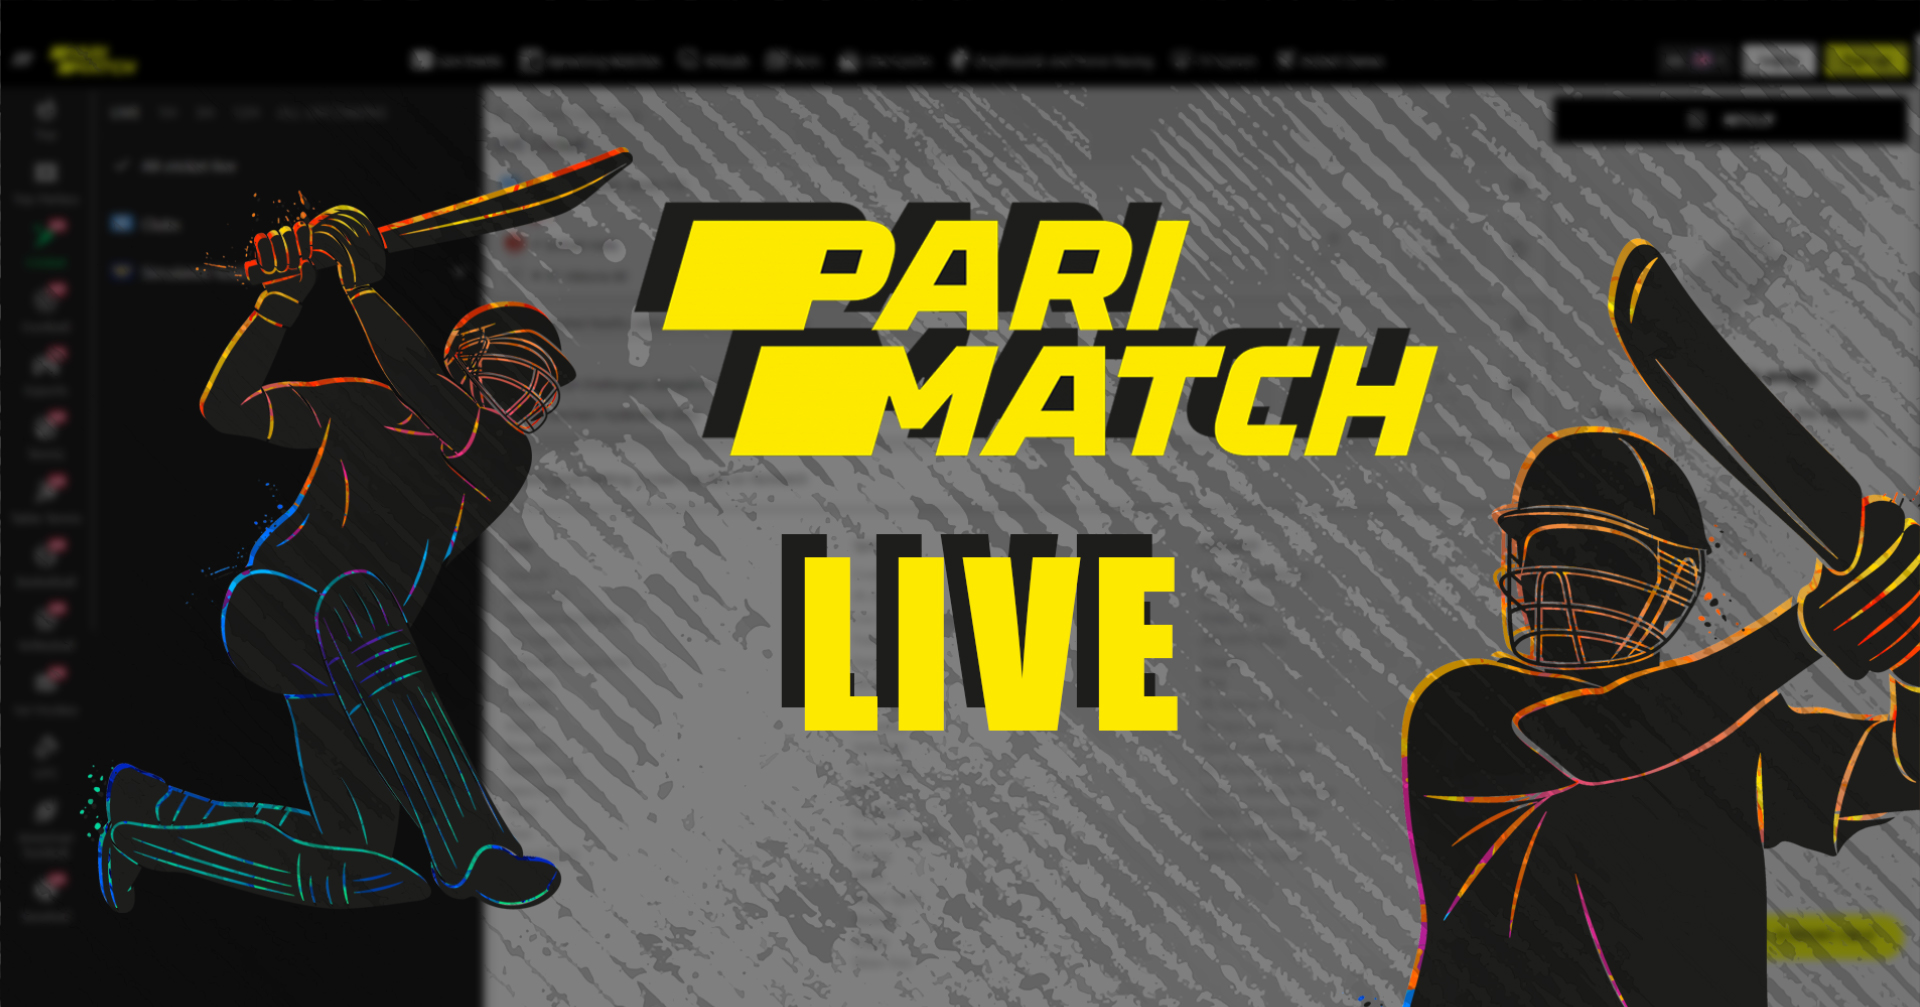 You can follow the match online at the Live Section.